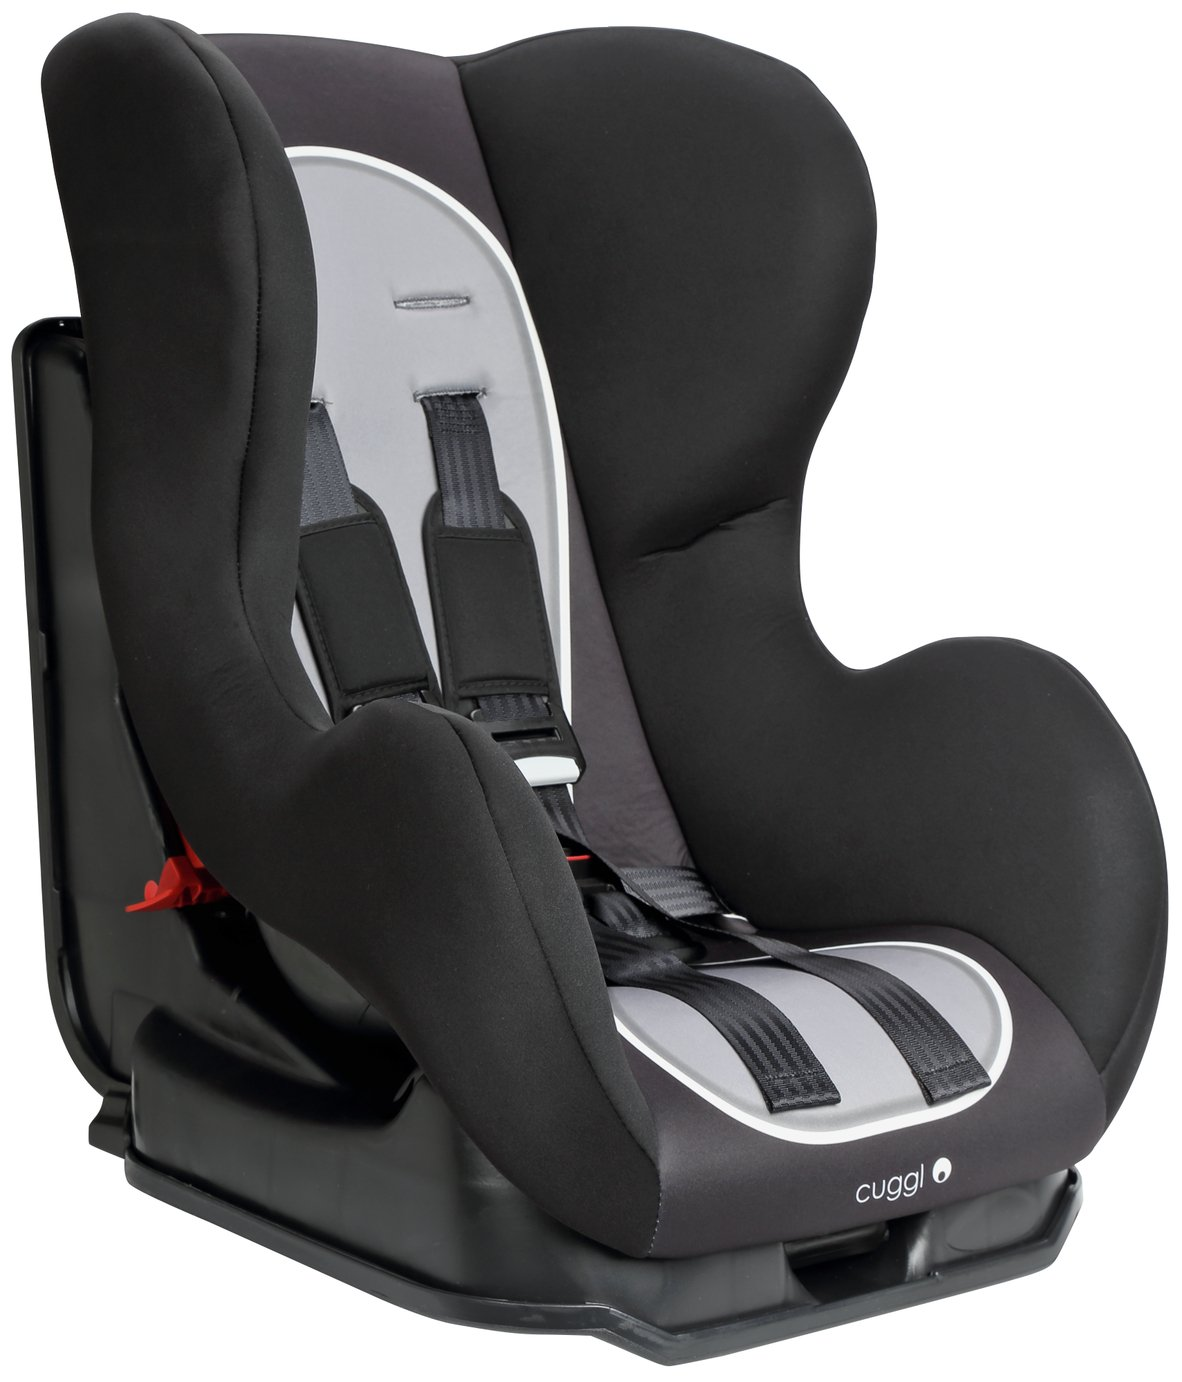 Cuggl Nightingale Group 1 Car Seat - Black and Grey